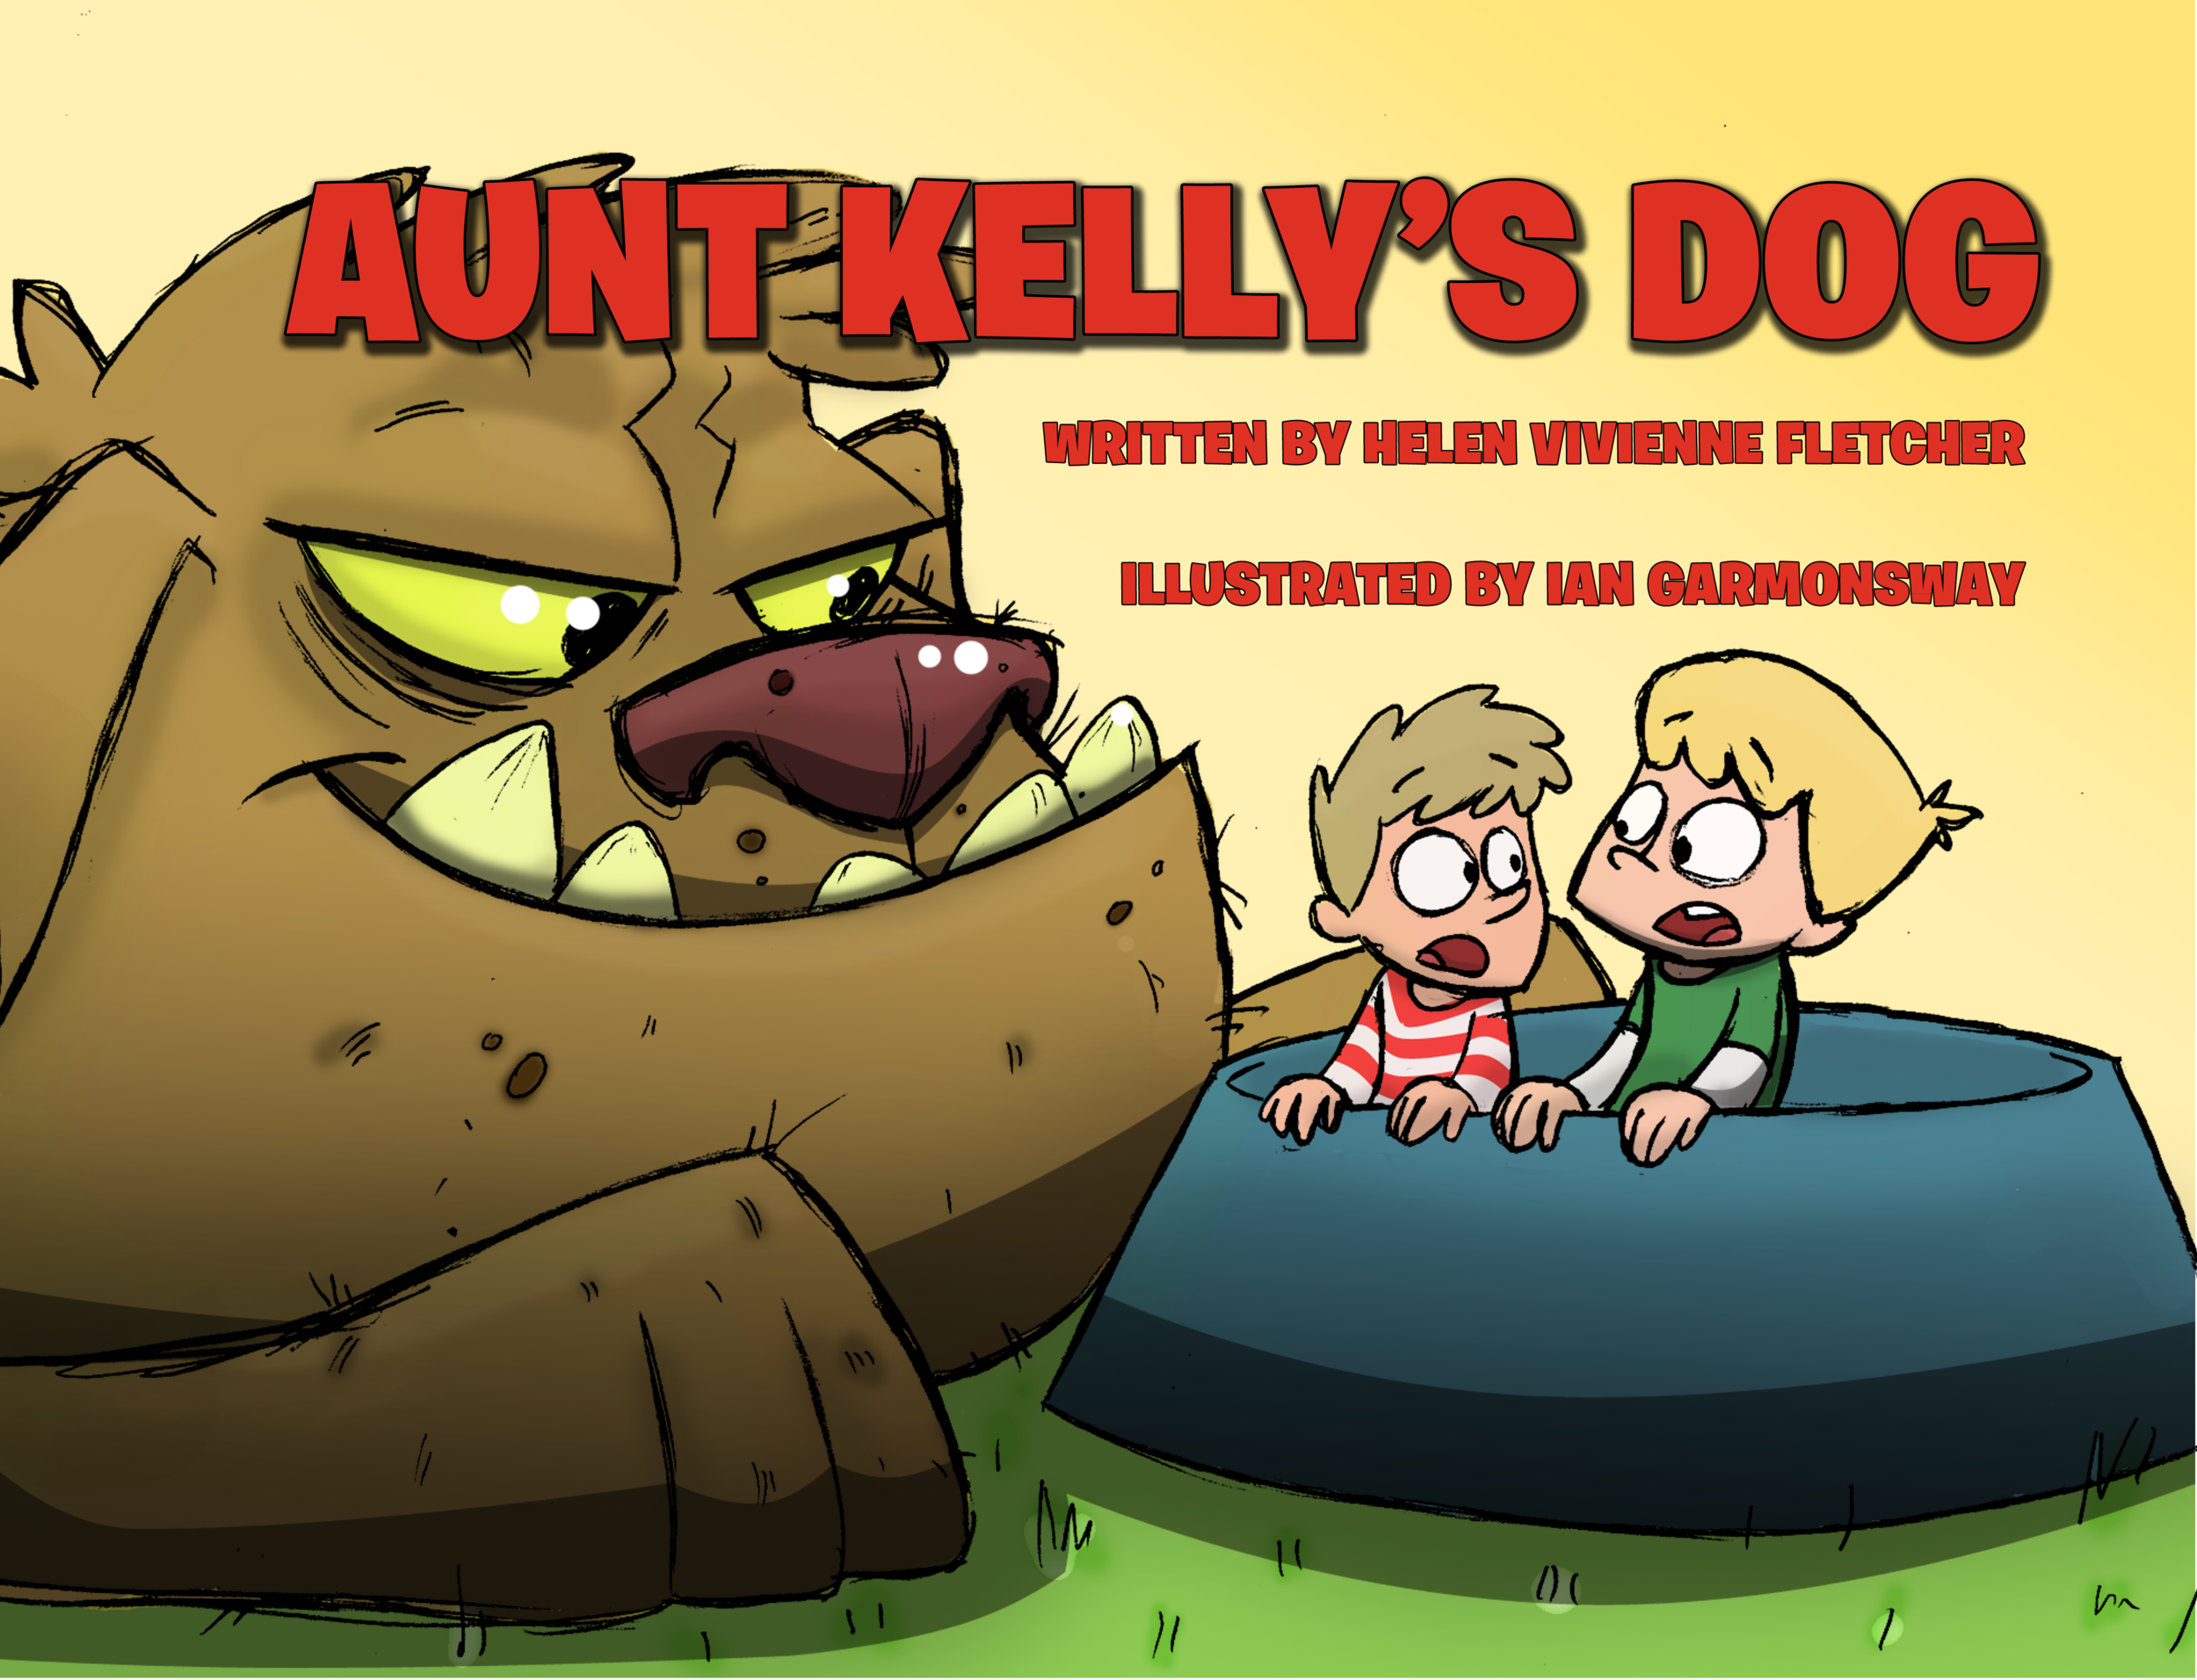 Aunt Kelly's Dog - NZ$20   Davey and Michael can't wait to meet Aunt Kelly's Dog... but what will they do if the dog is a big, scary, people-eating monster?